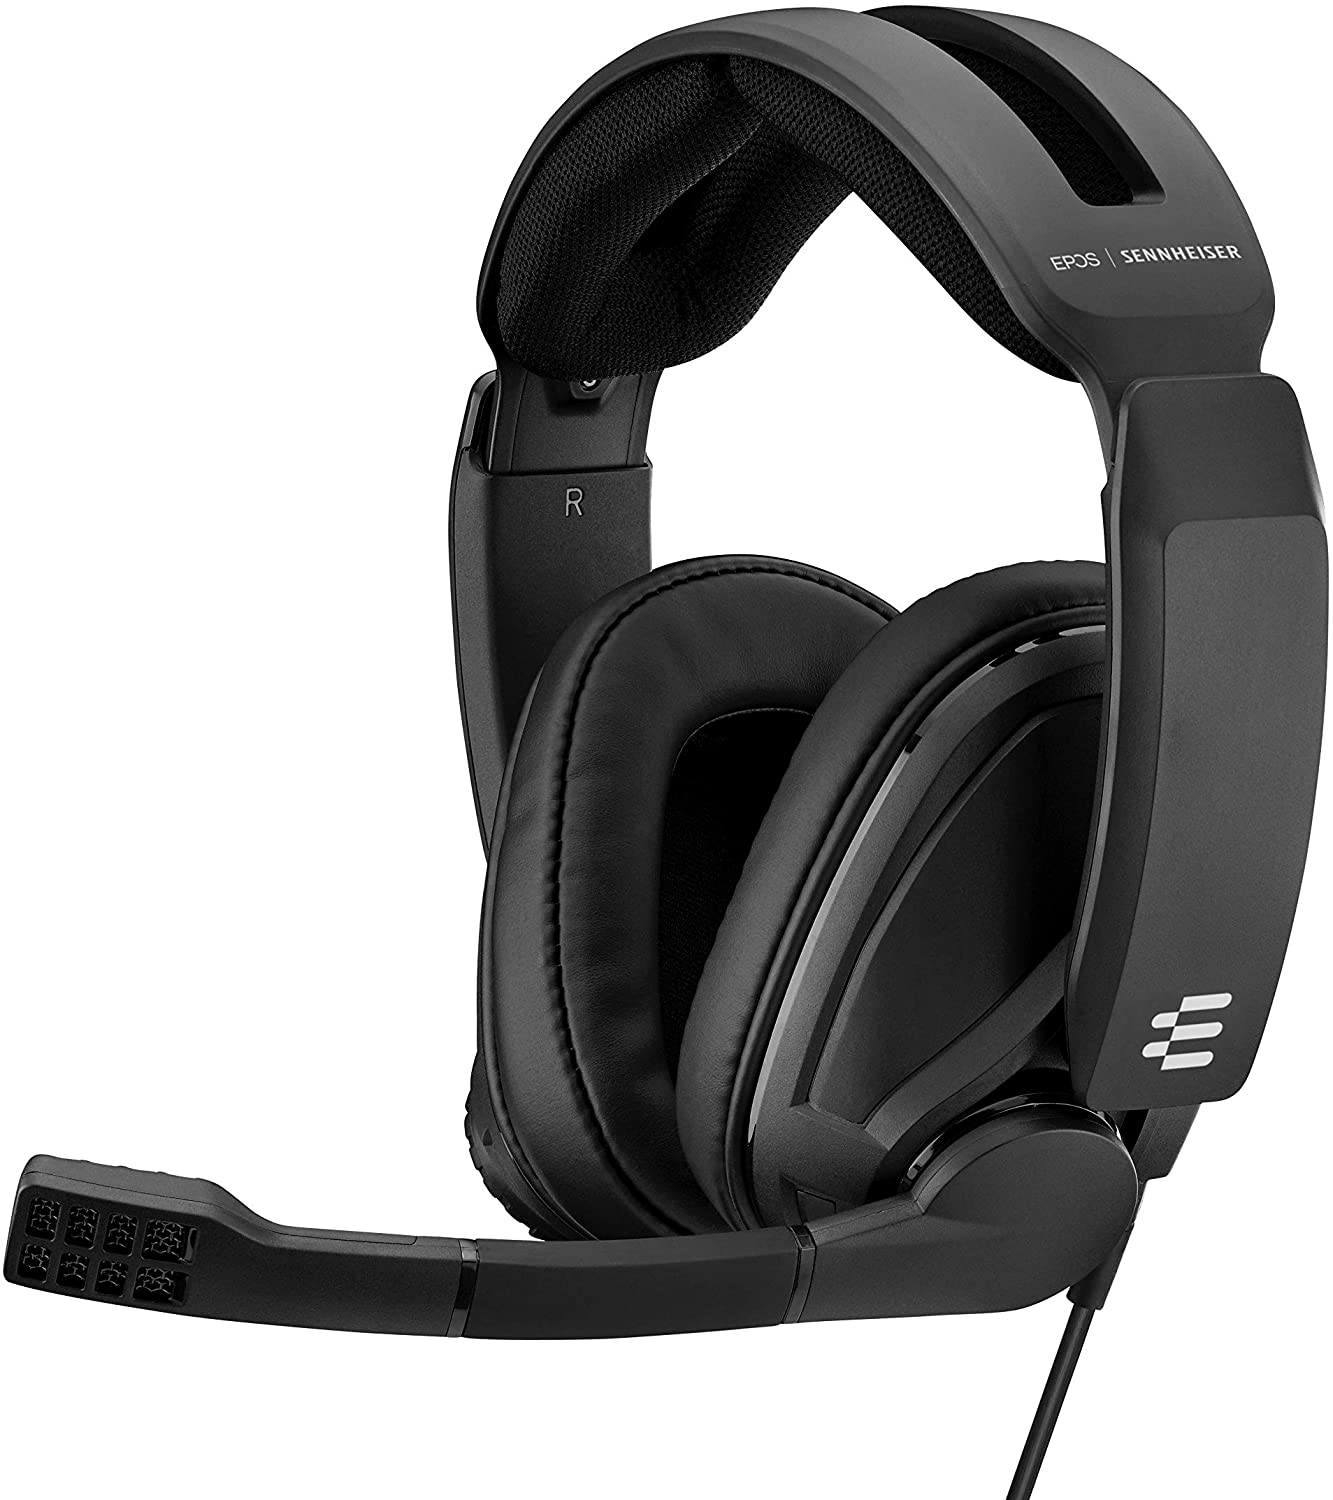 Top 5 best RGB Gaming headsets under $100 1